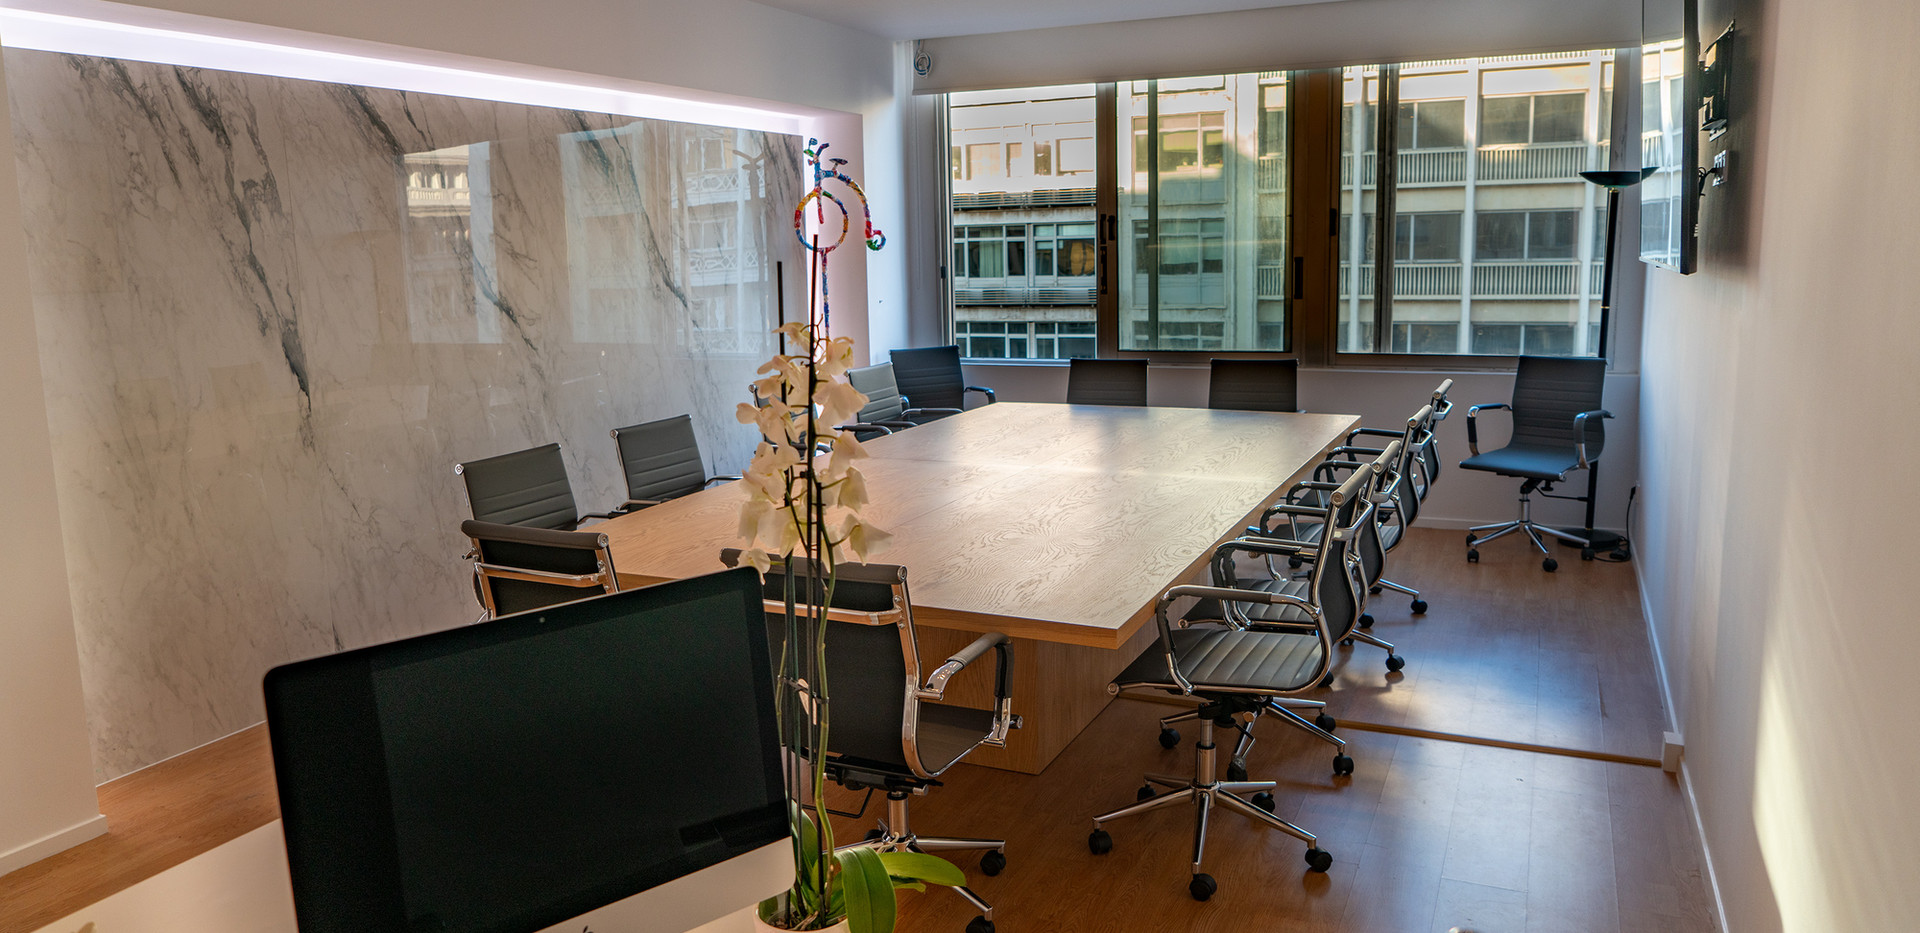 Conference room 2, at 5th floor